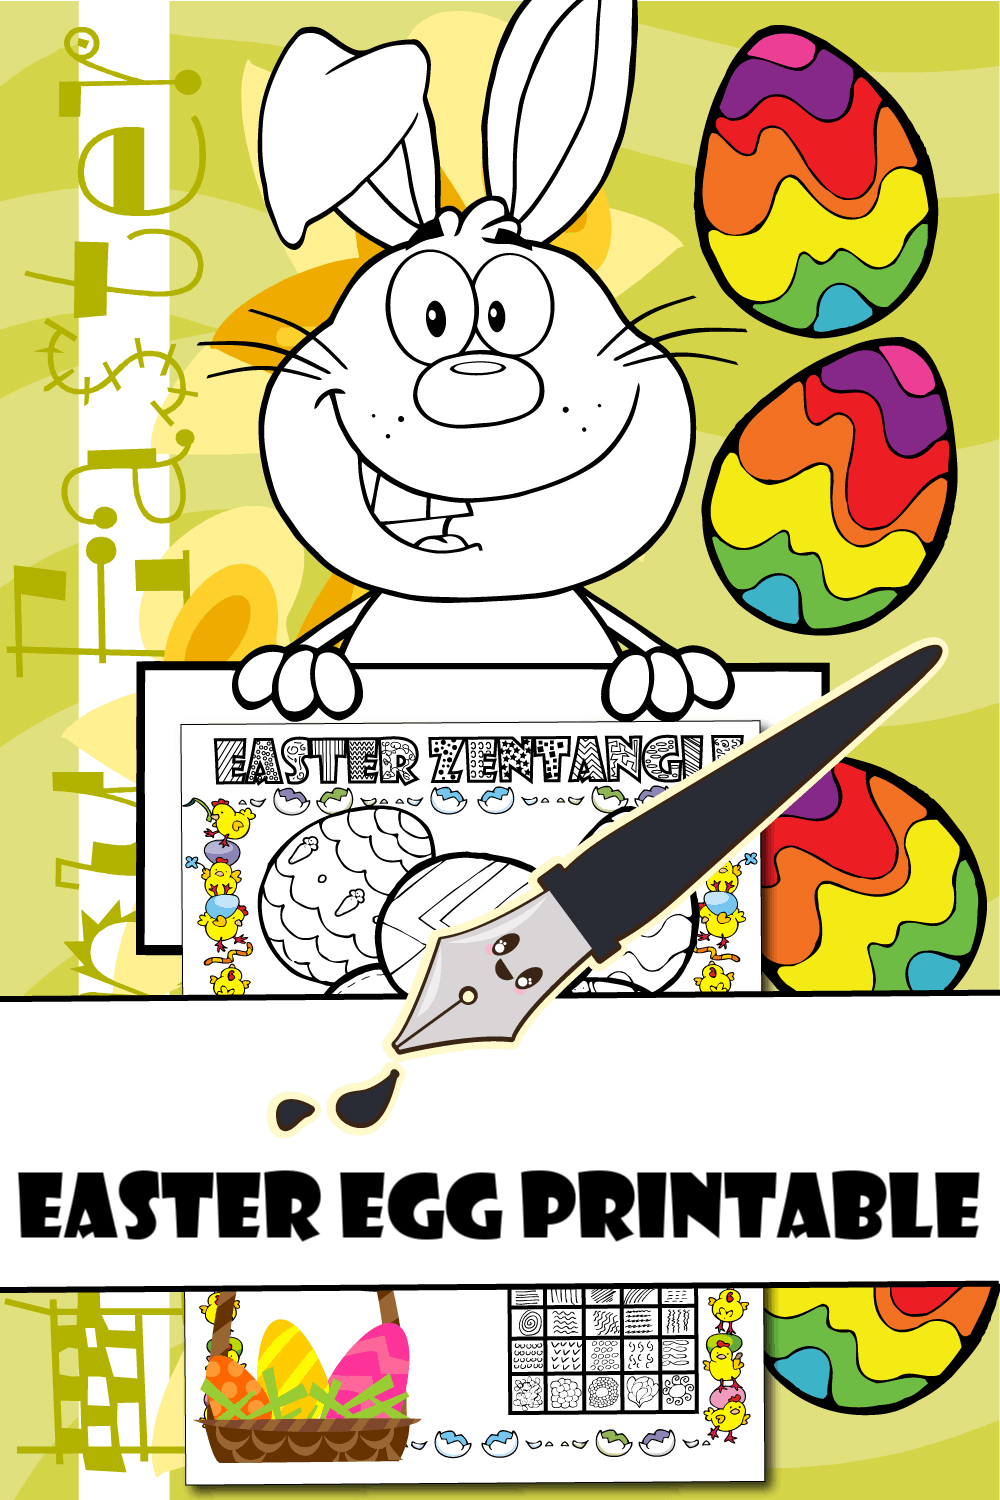 Easter Egg Printable with Easter Bunny